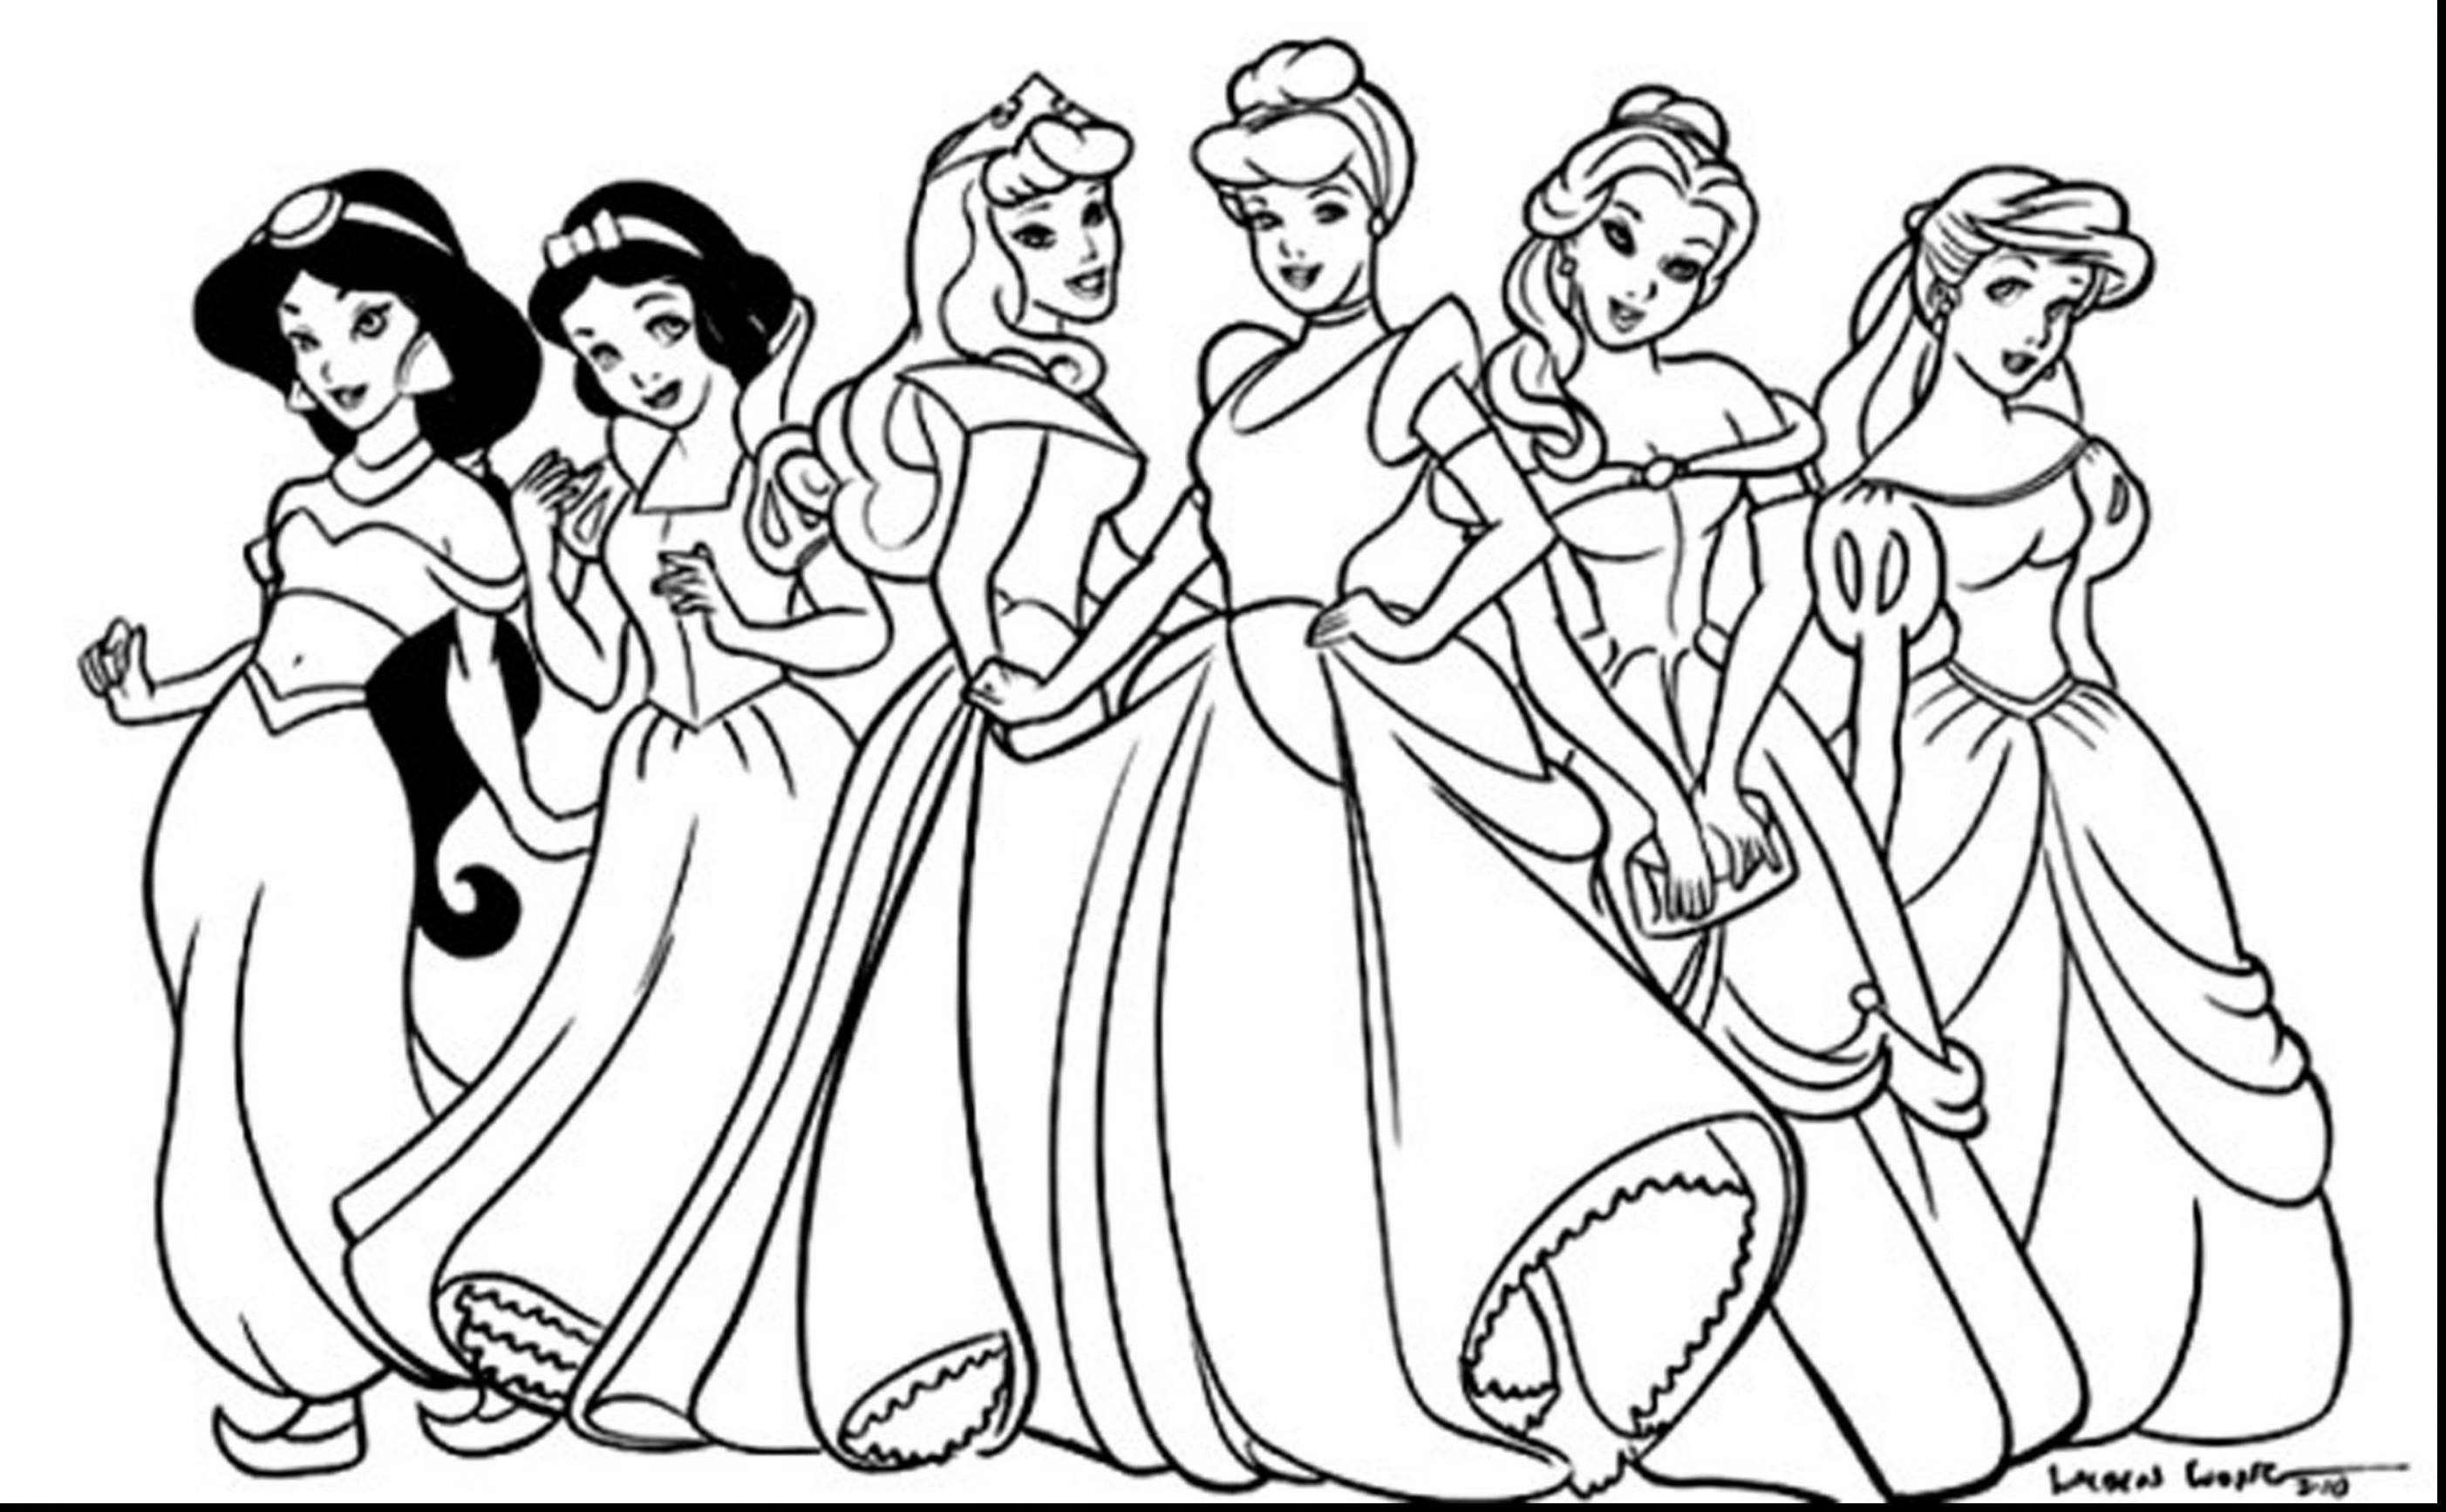 22 Great Photo Of Belle Coloring Pages Davemelillo Com Princess Coloring Pages Disney Princess Coloring Pages Cinderella Coloring Pages